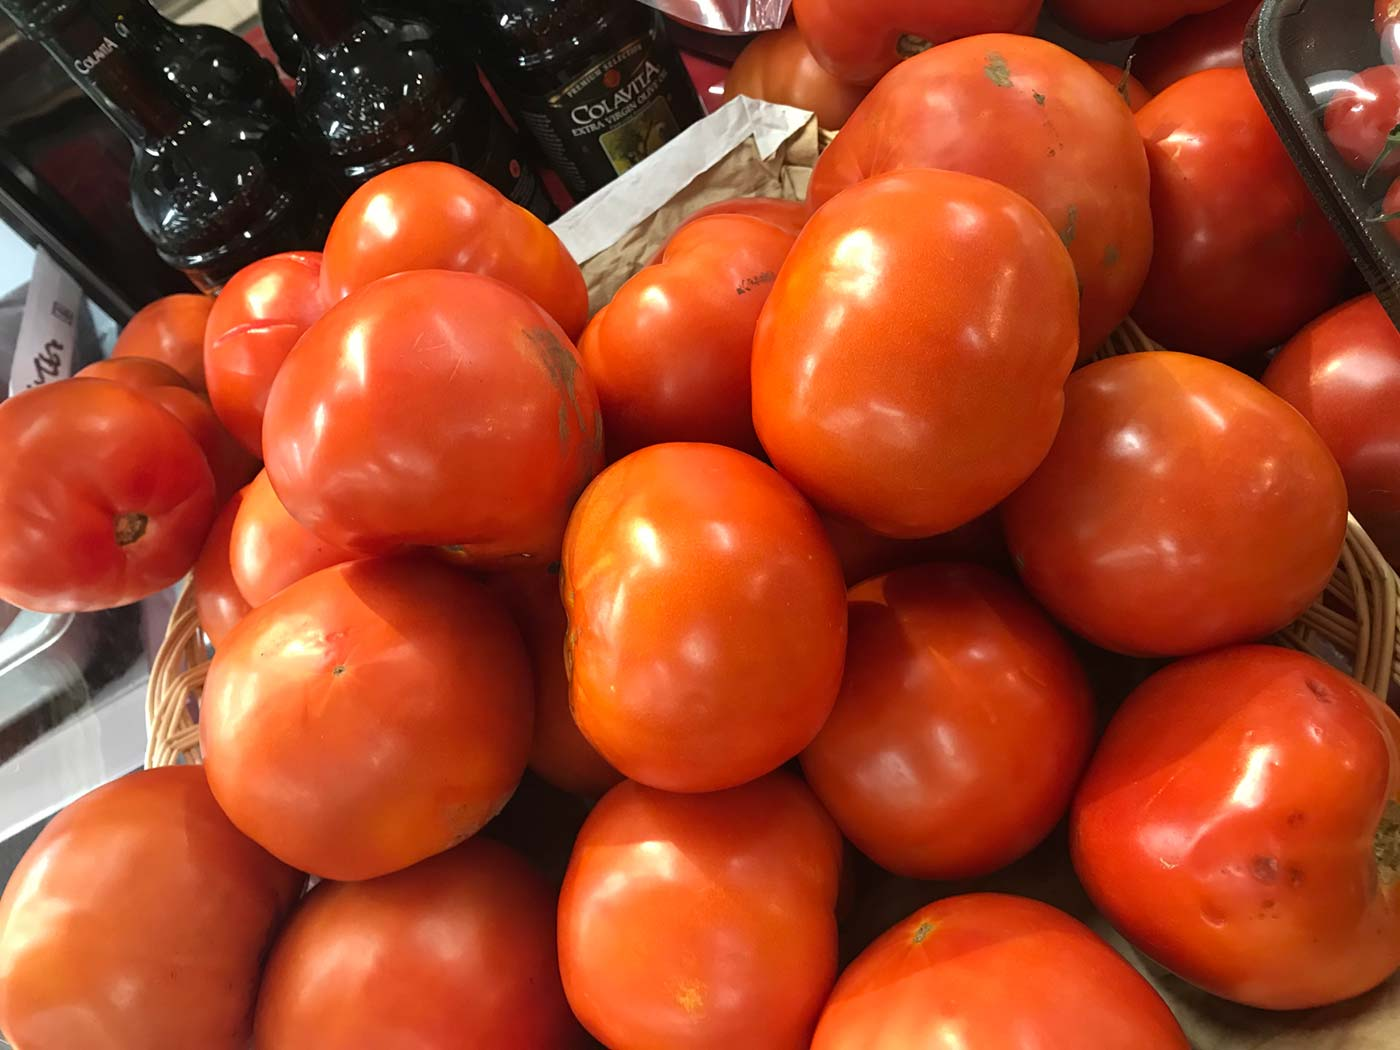 A basket of New Jersey tomatoes